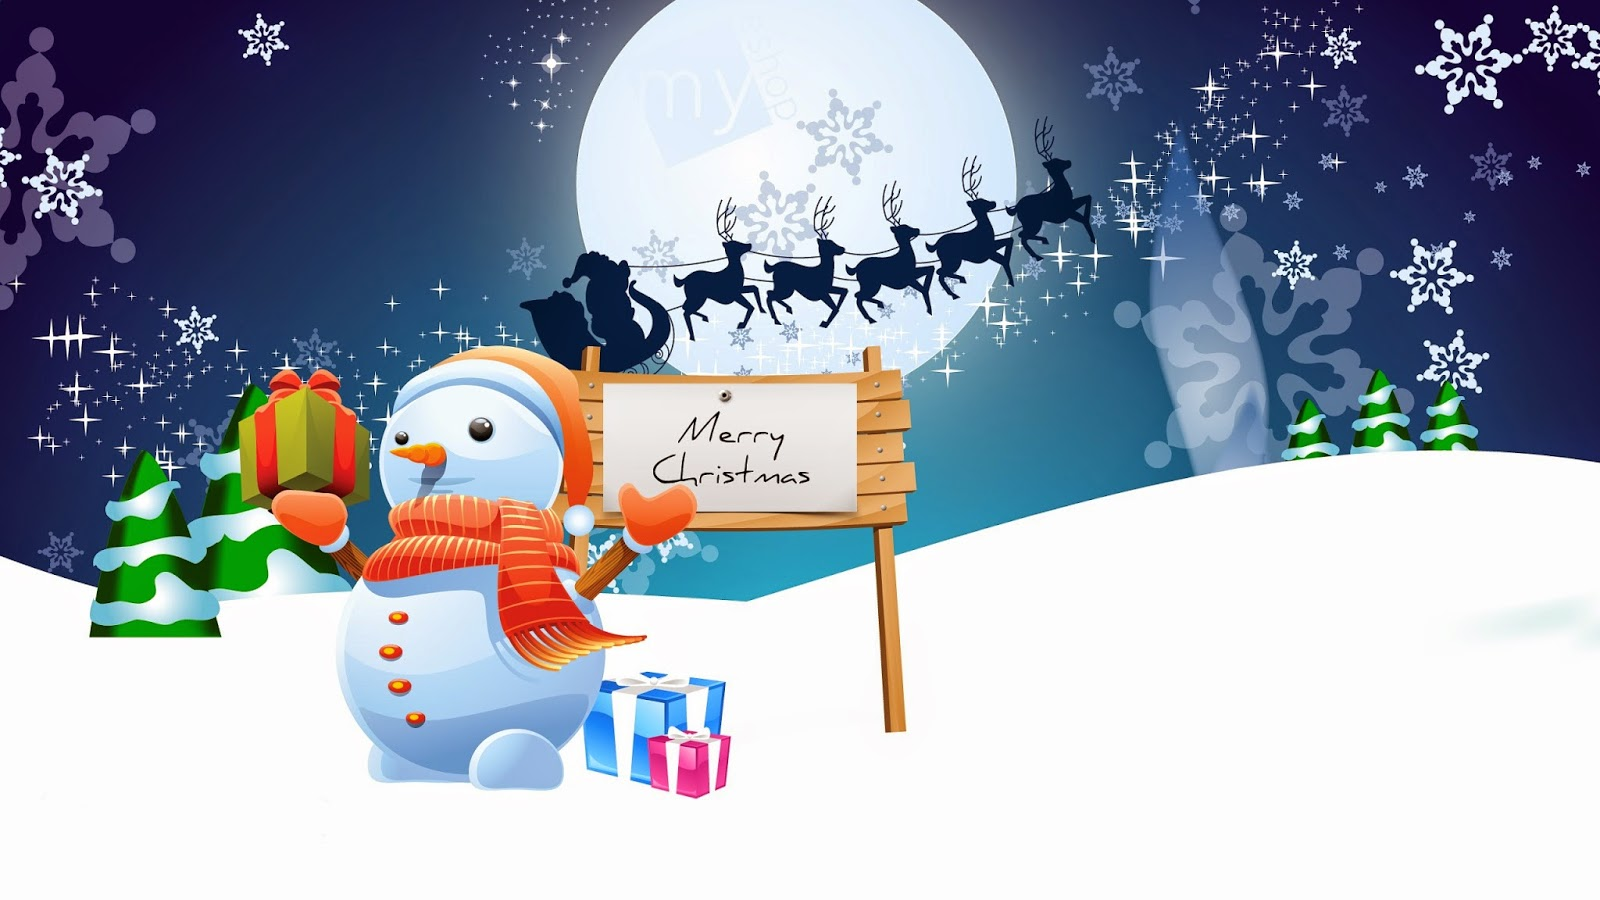 Snowman-with-merry-Christmas-greetings-texted-board-wish-wallpaper-image.jpg